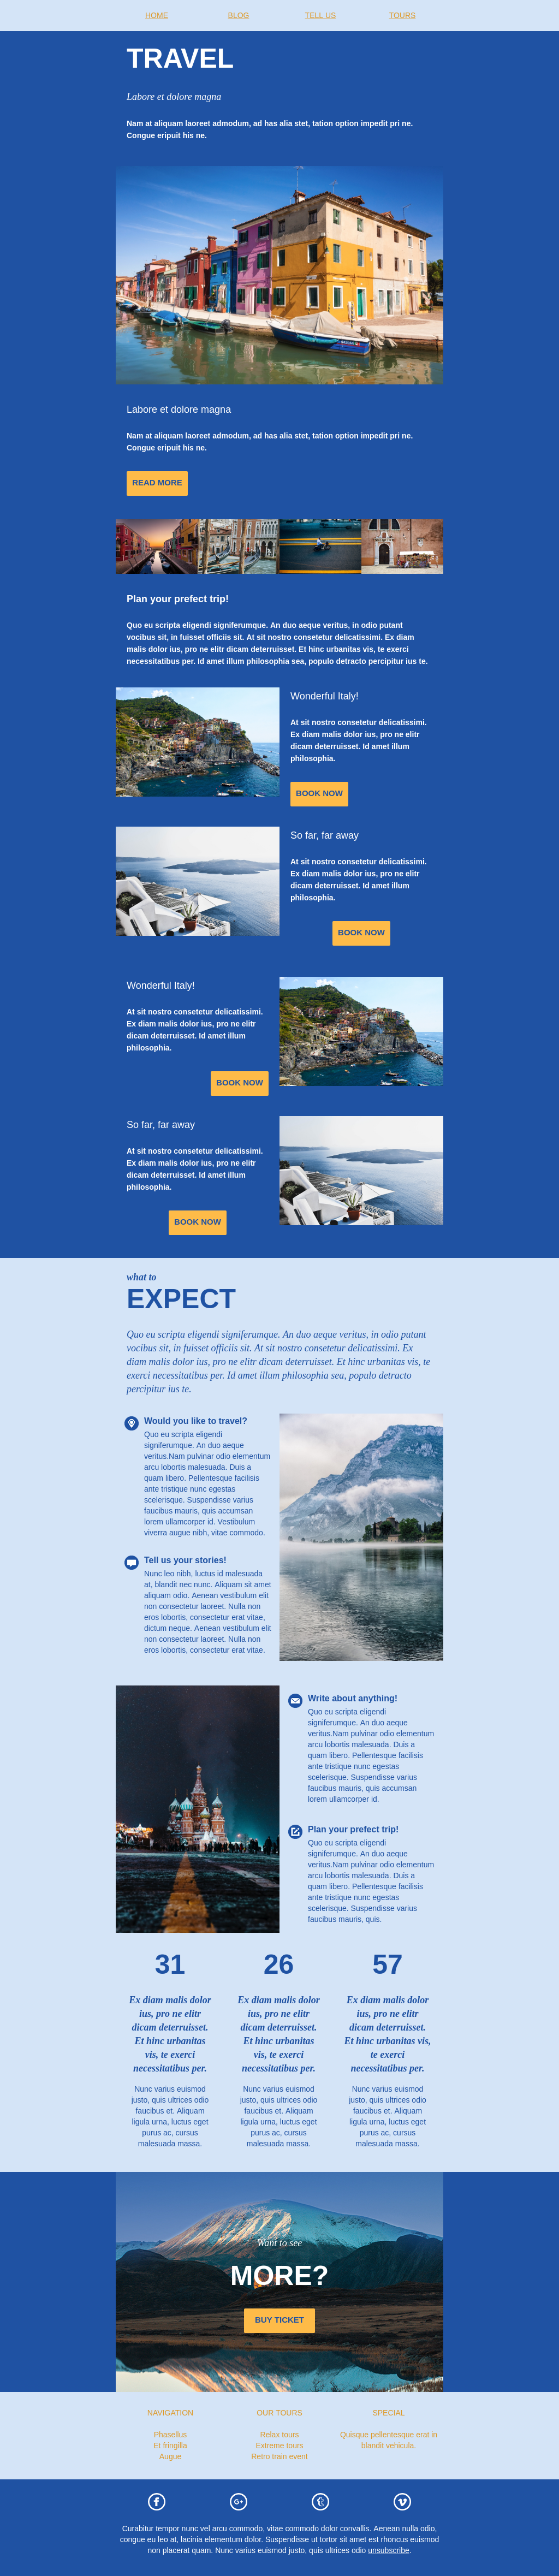 A blue and orange themed travel newsletter email template